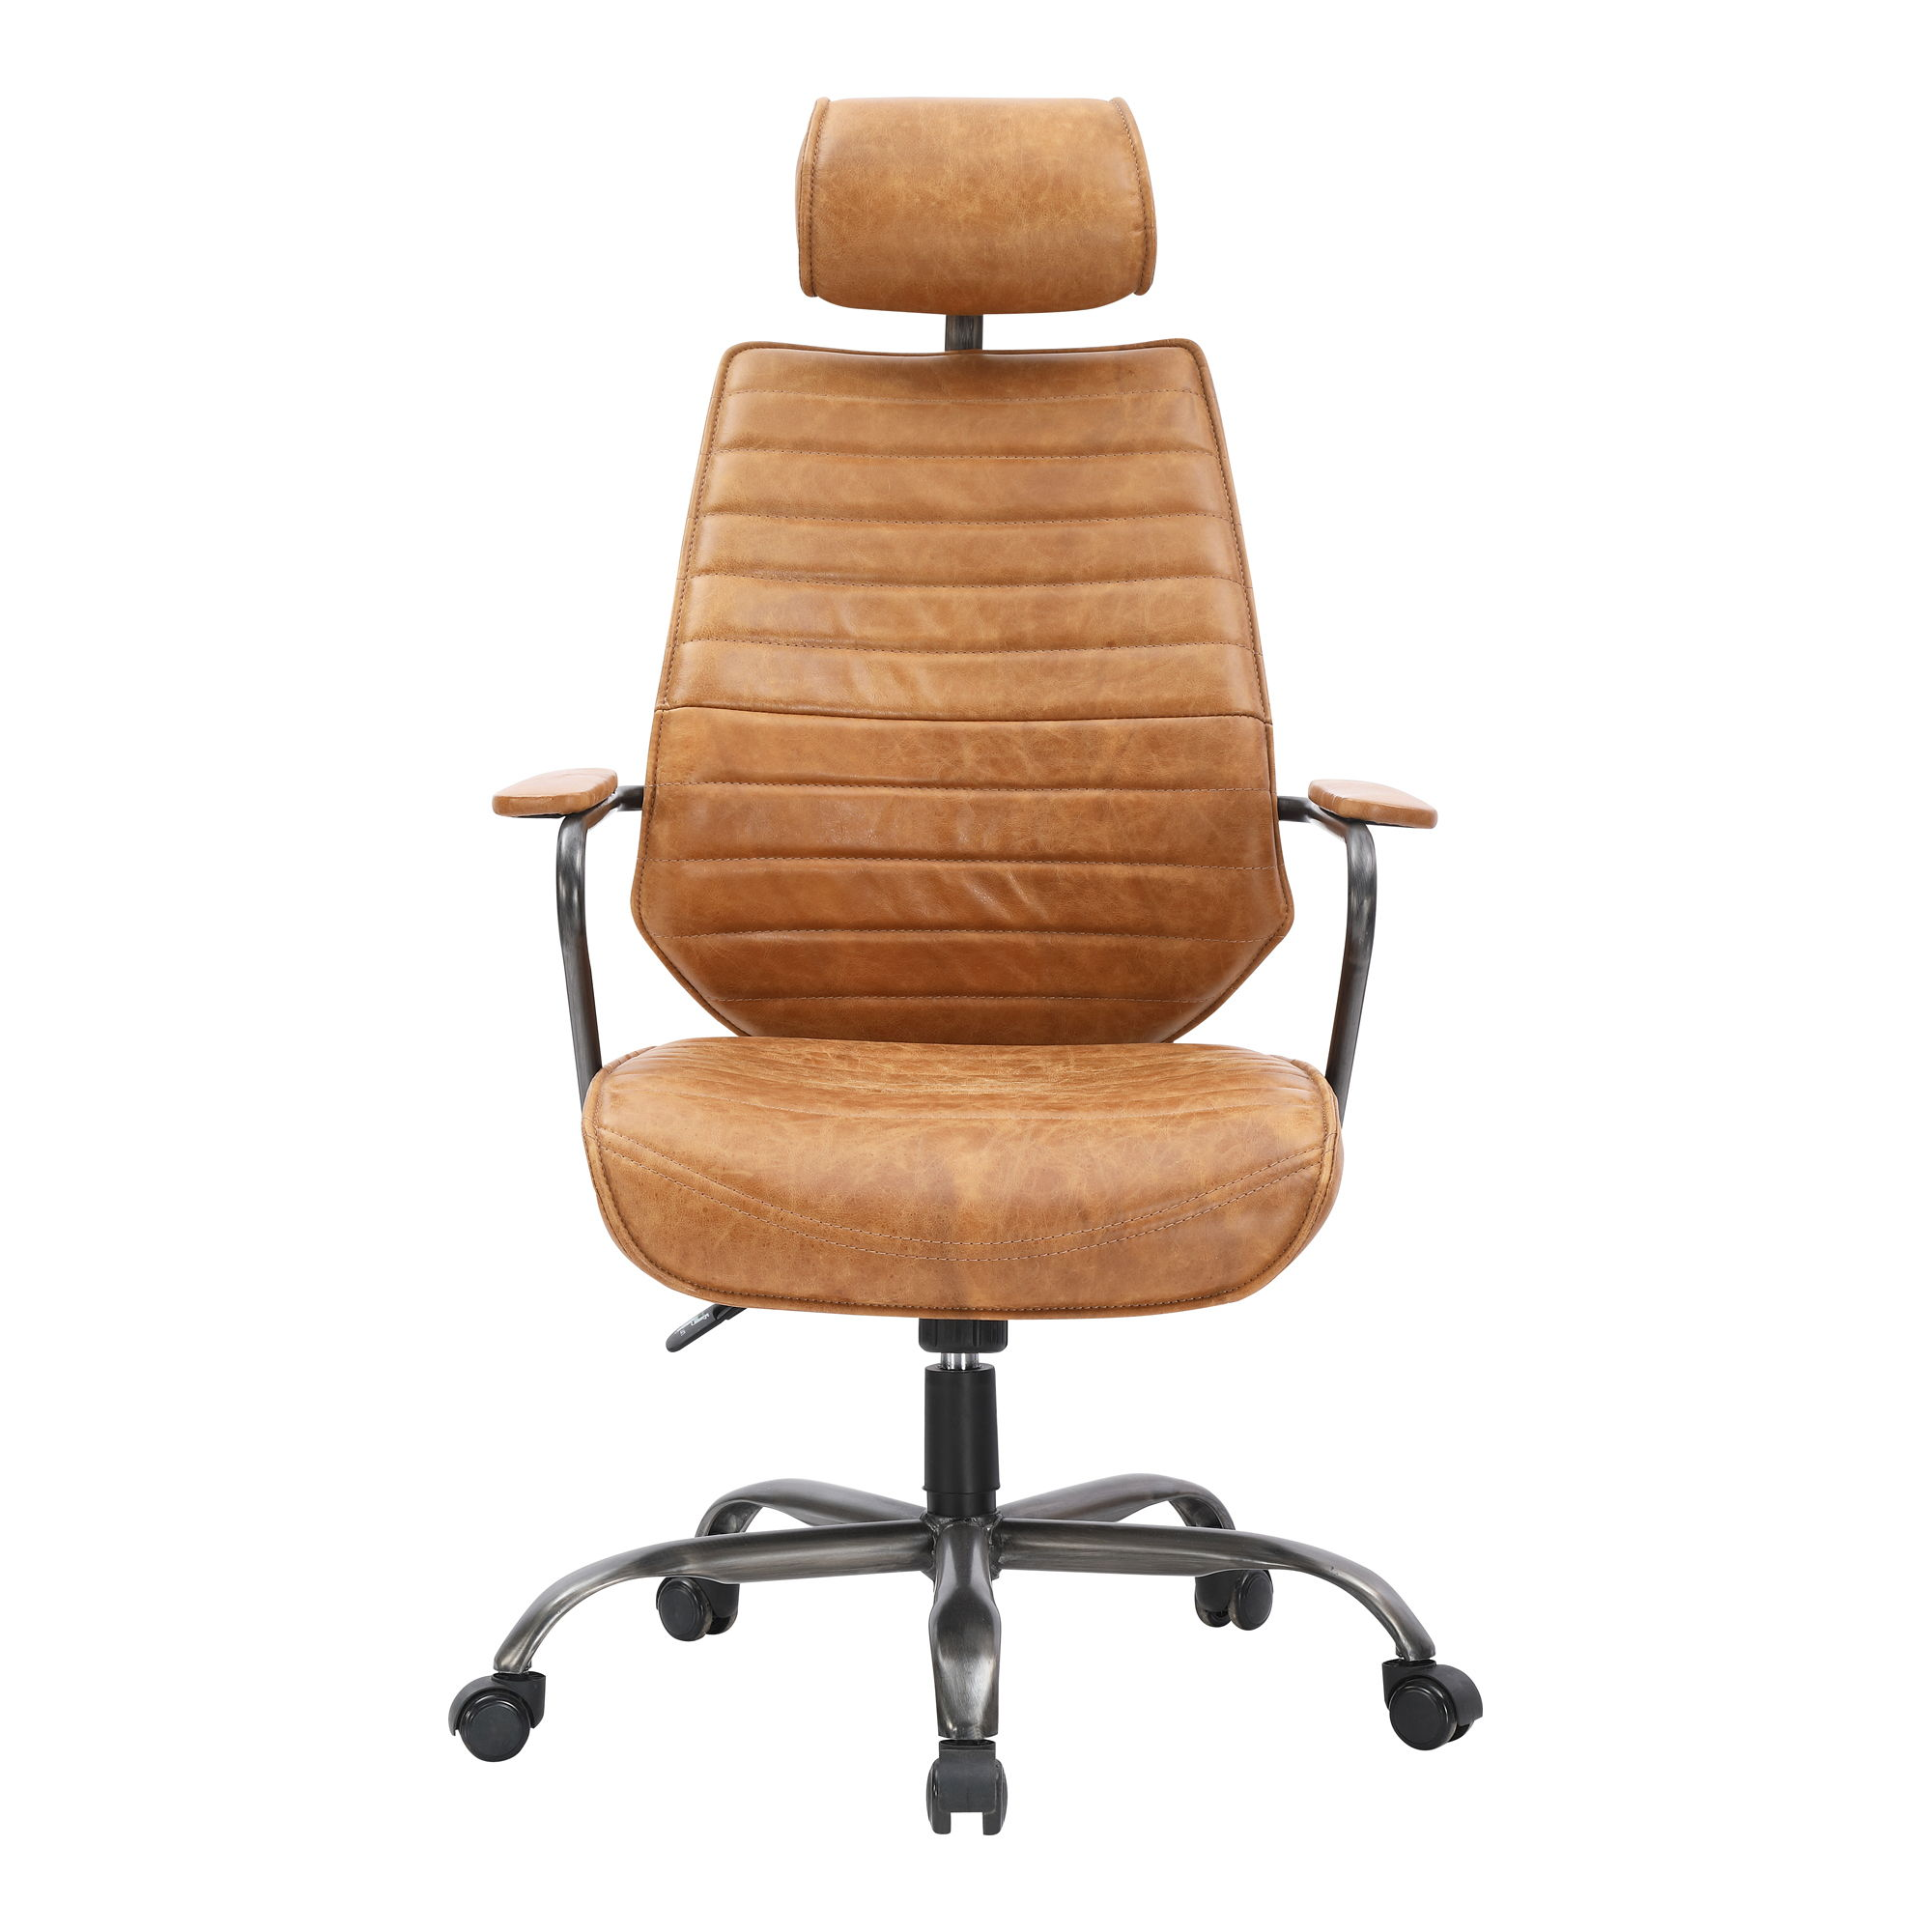 Incredible Moes Home Executive Orange Swivel Office Chair Ncnpc Chair Design For Home Ncnpcorg